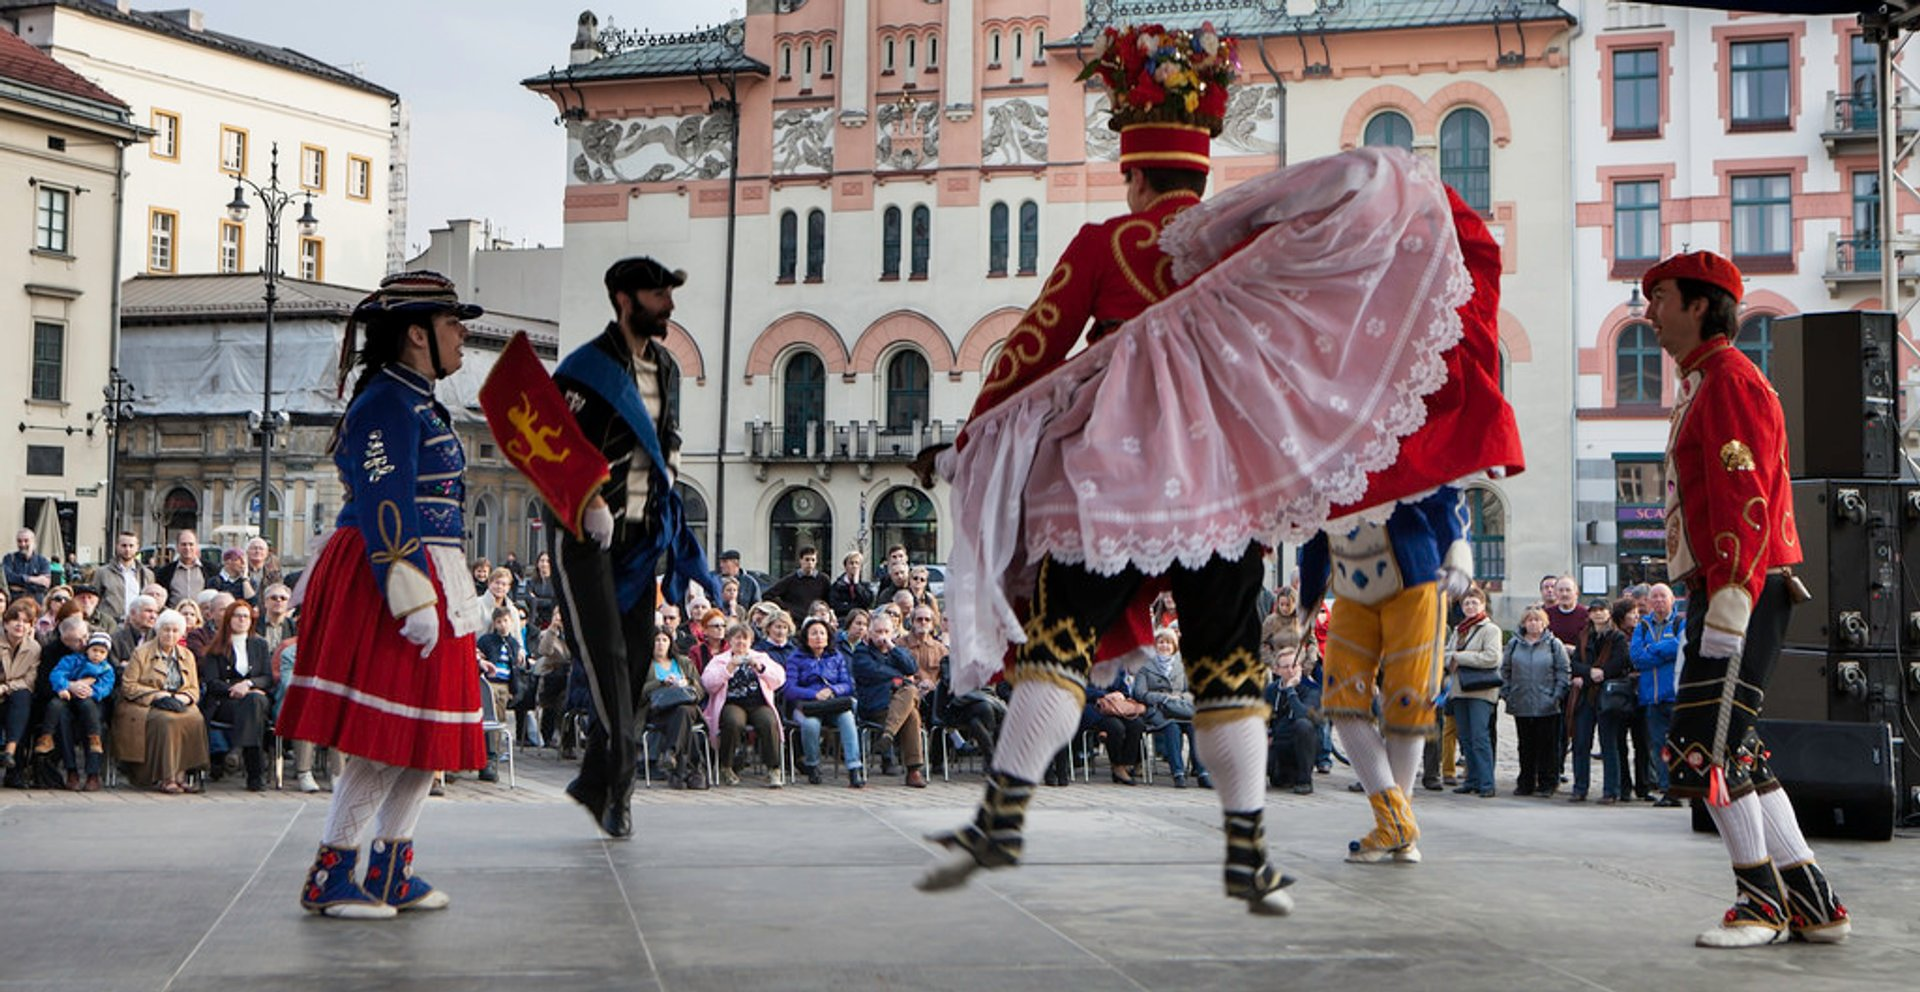 Lajkonik Parade in Krakow - Best Season 2020